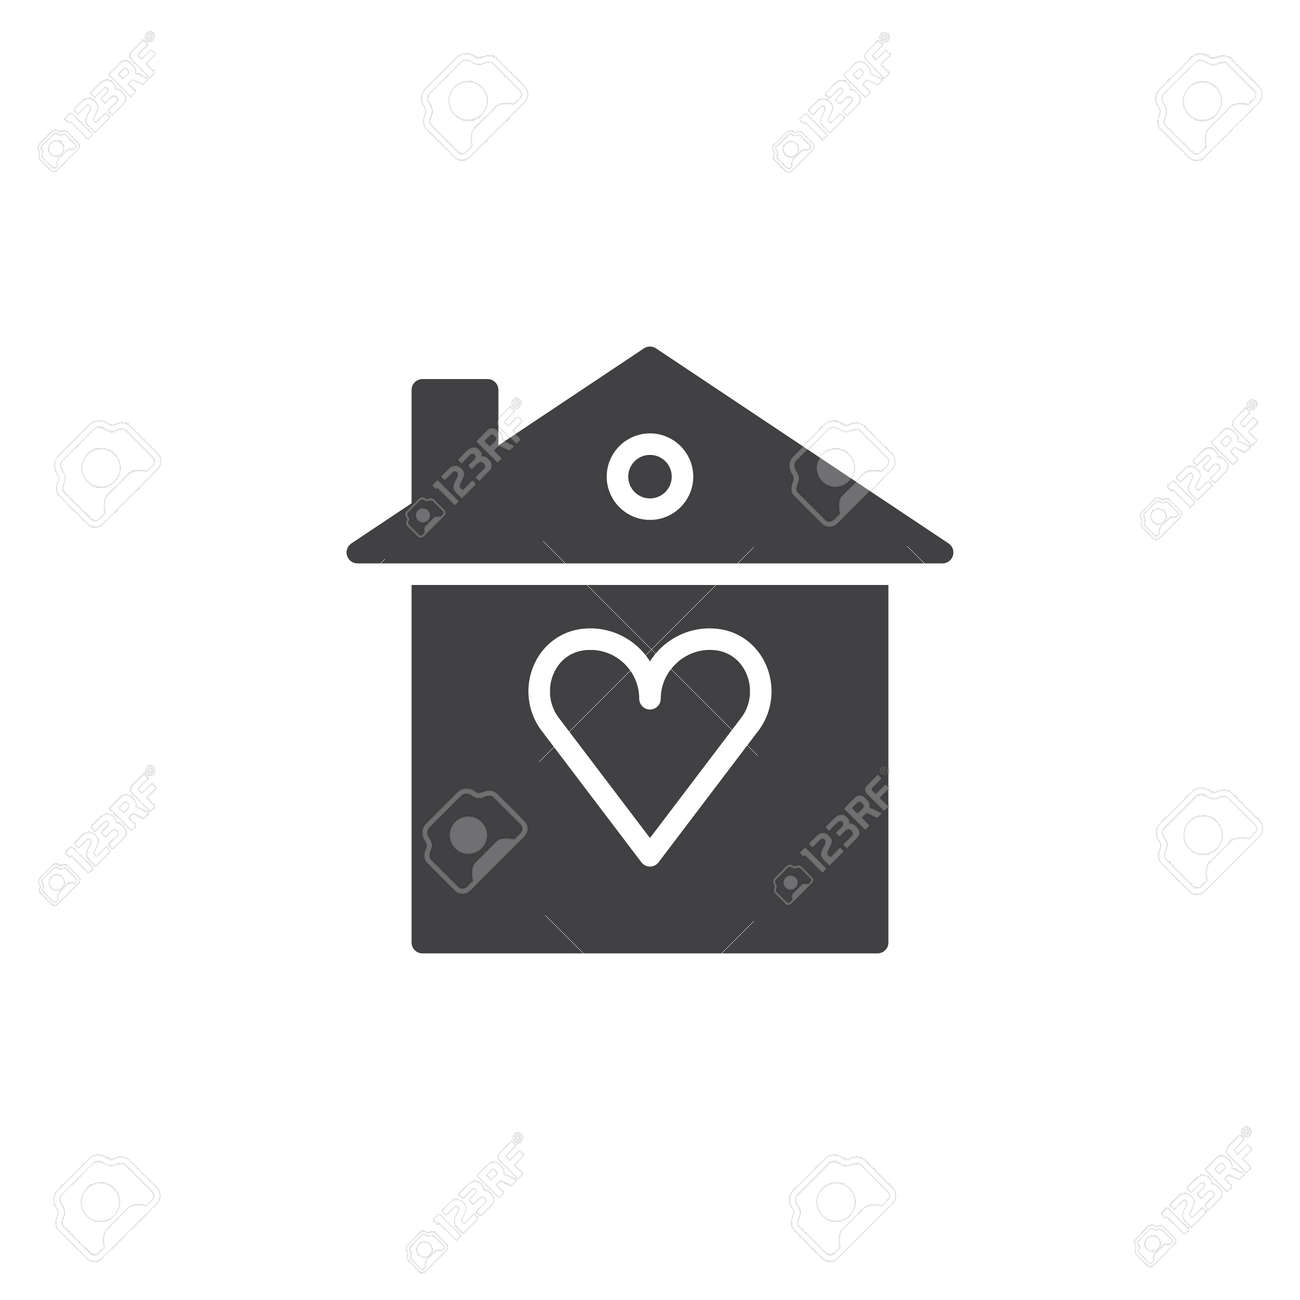 Heart Home Icon Vector Filled Flat Sign Solid Pictogram Isolated